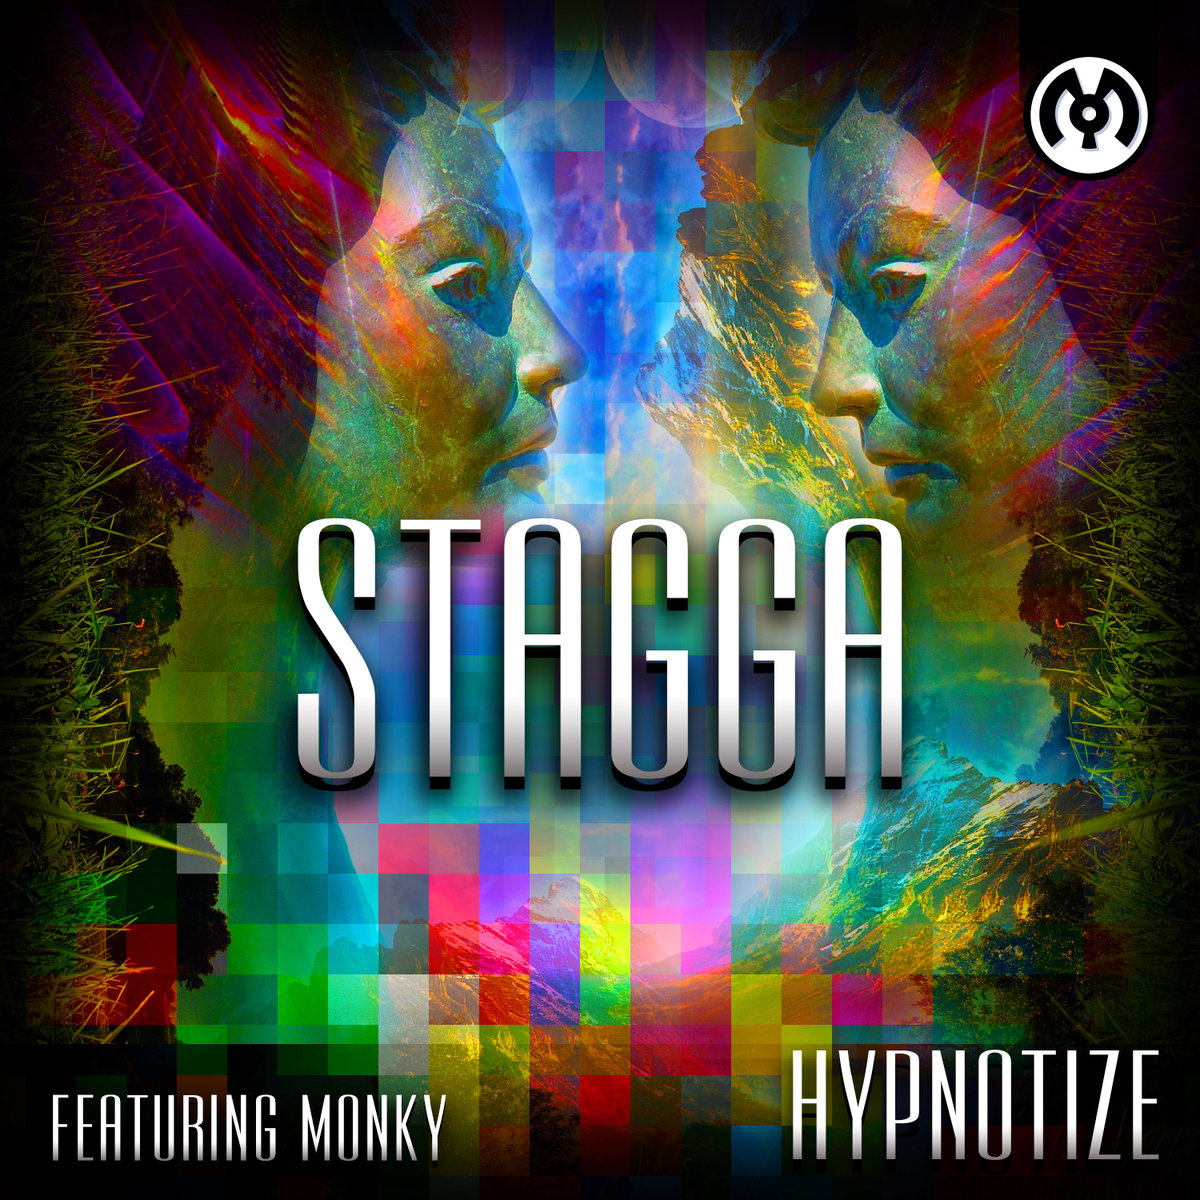 Stagga - Hypnotize (Lotus Drops Remix) @ 'Hypnotize' album (electronic, dubstep)